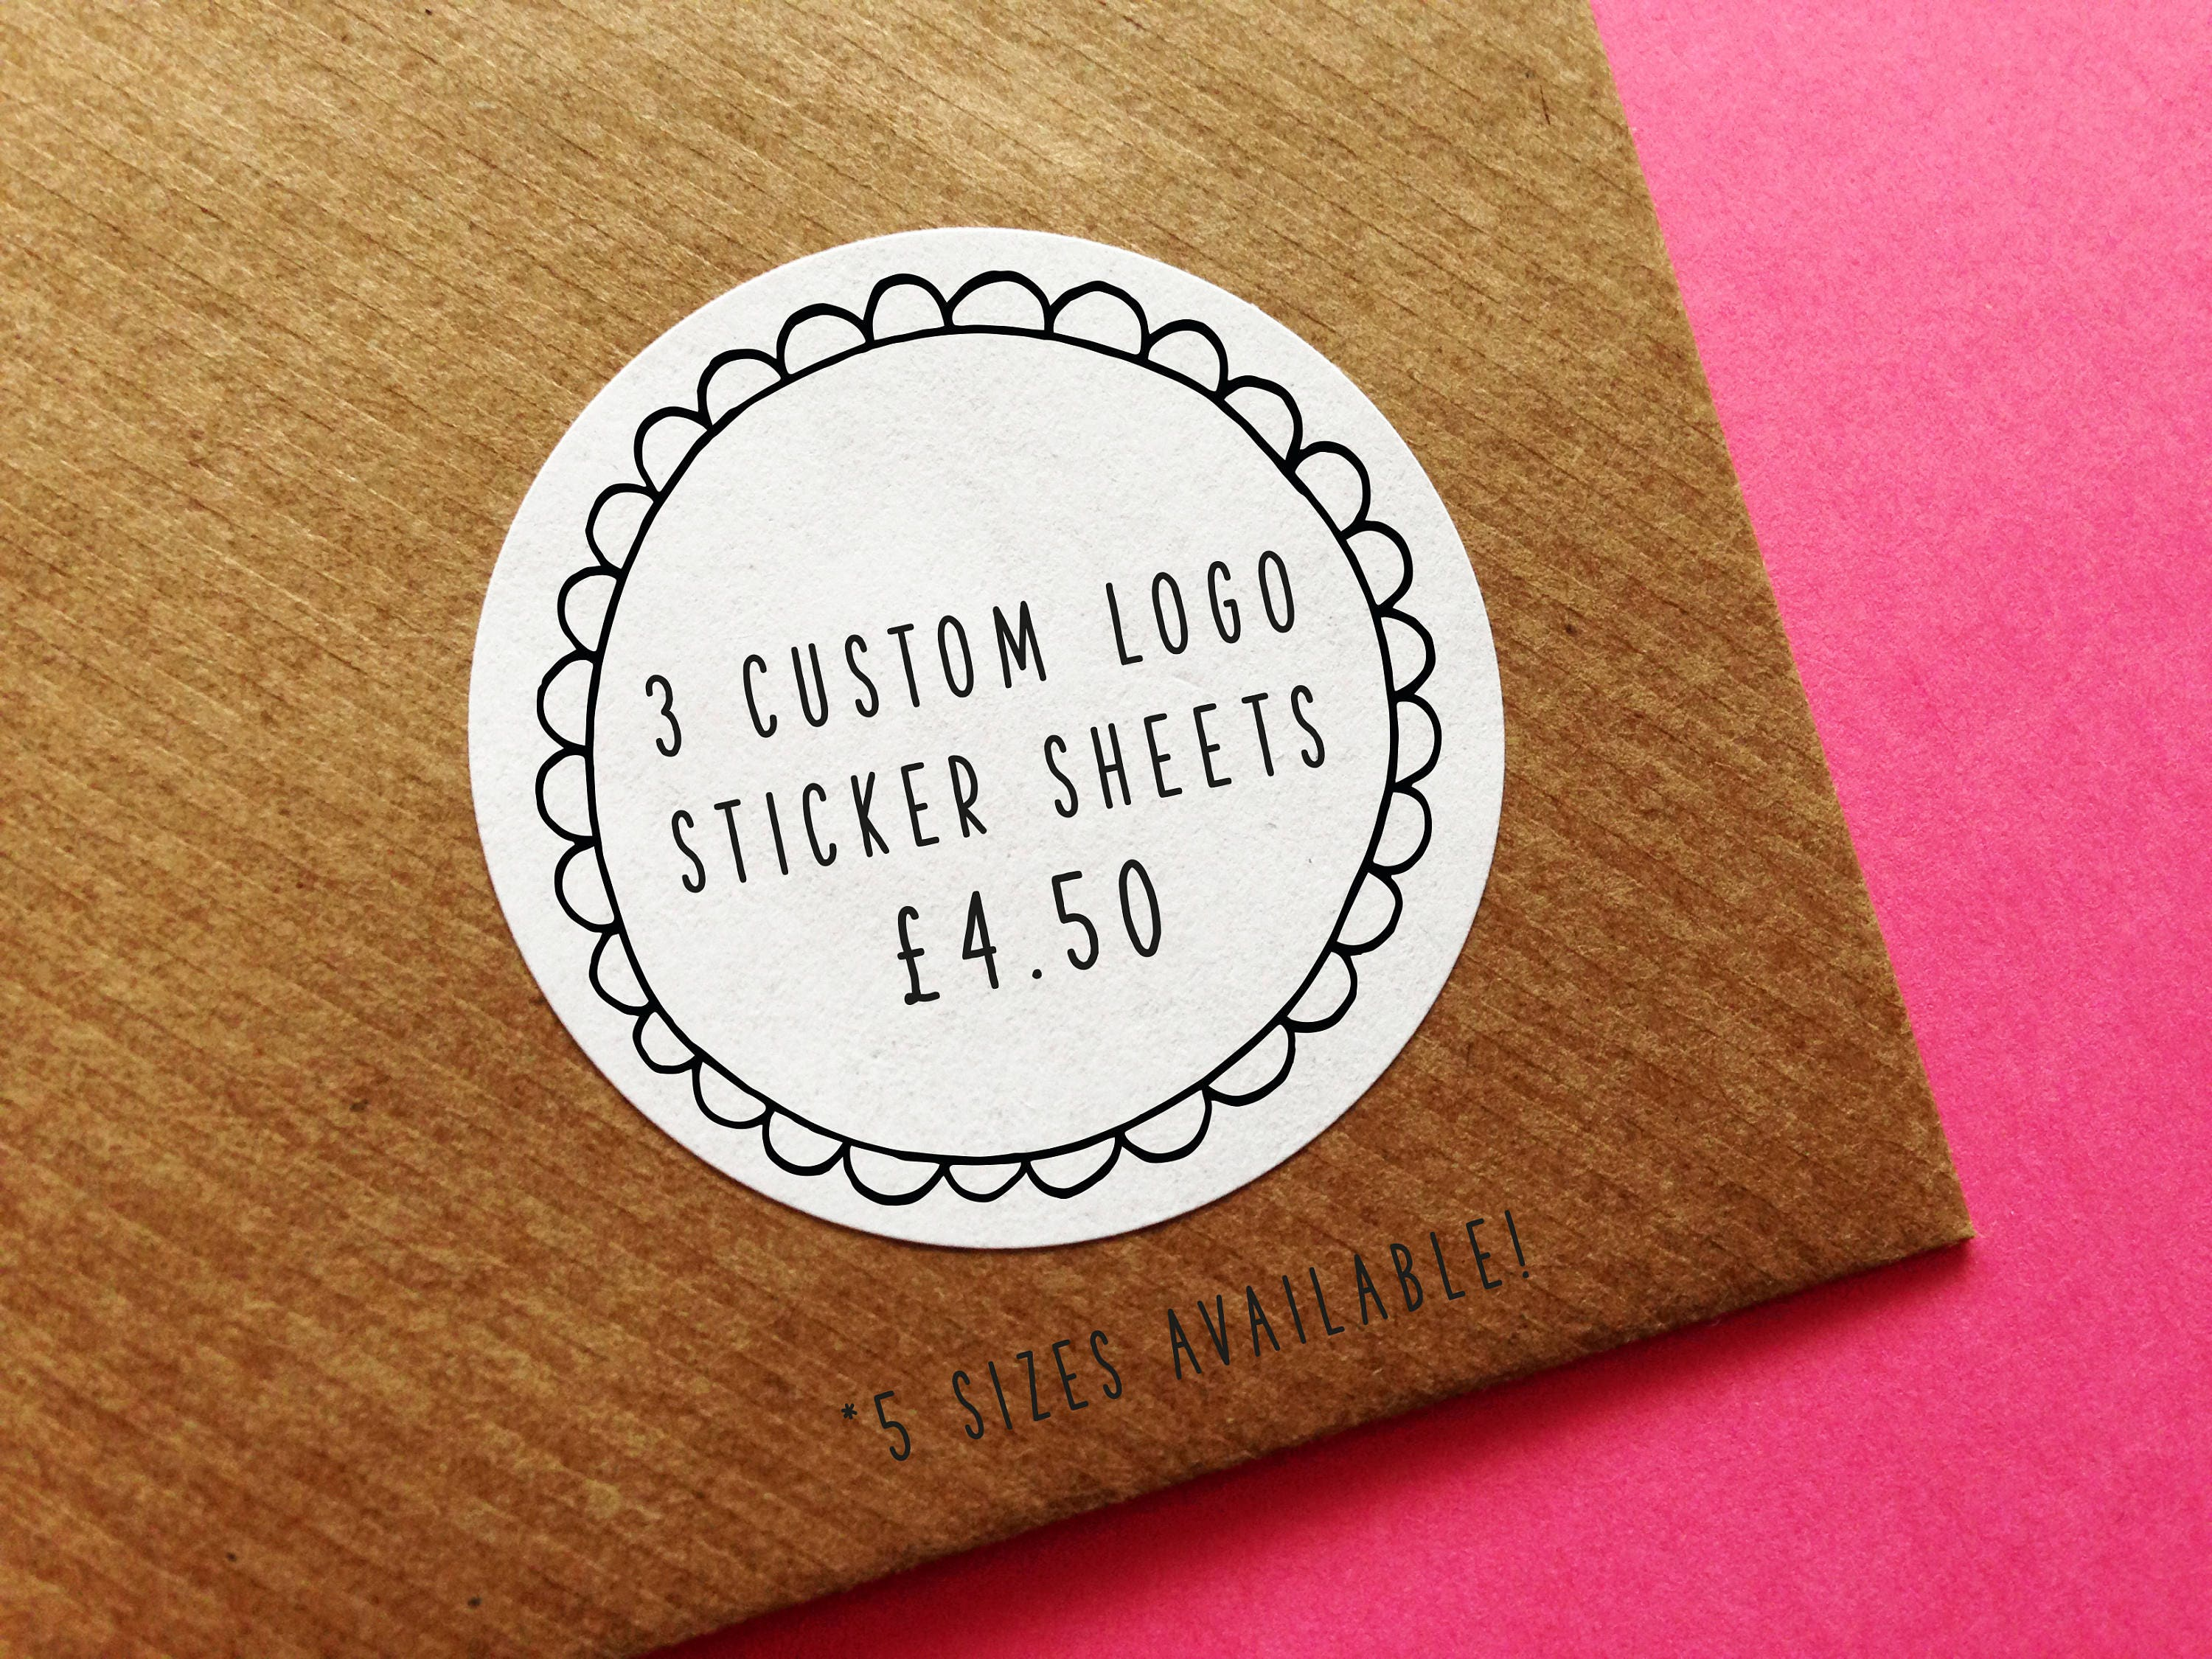 Custom Logo Sticker Sheets Personalised Stickers Custom - Custom business stickers